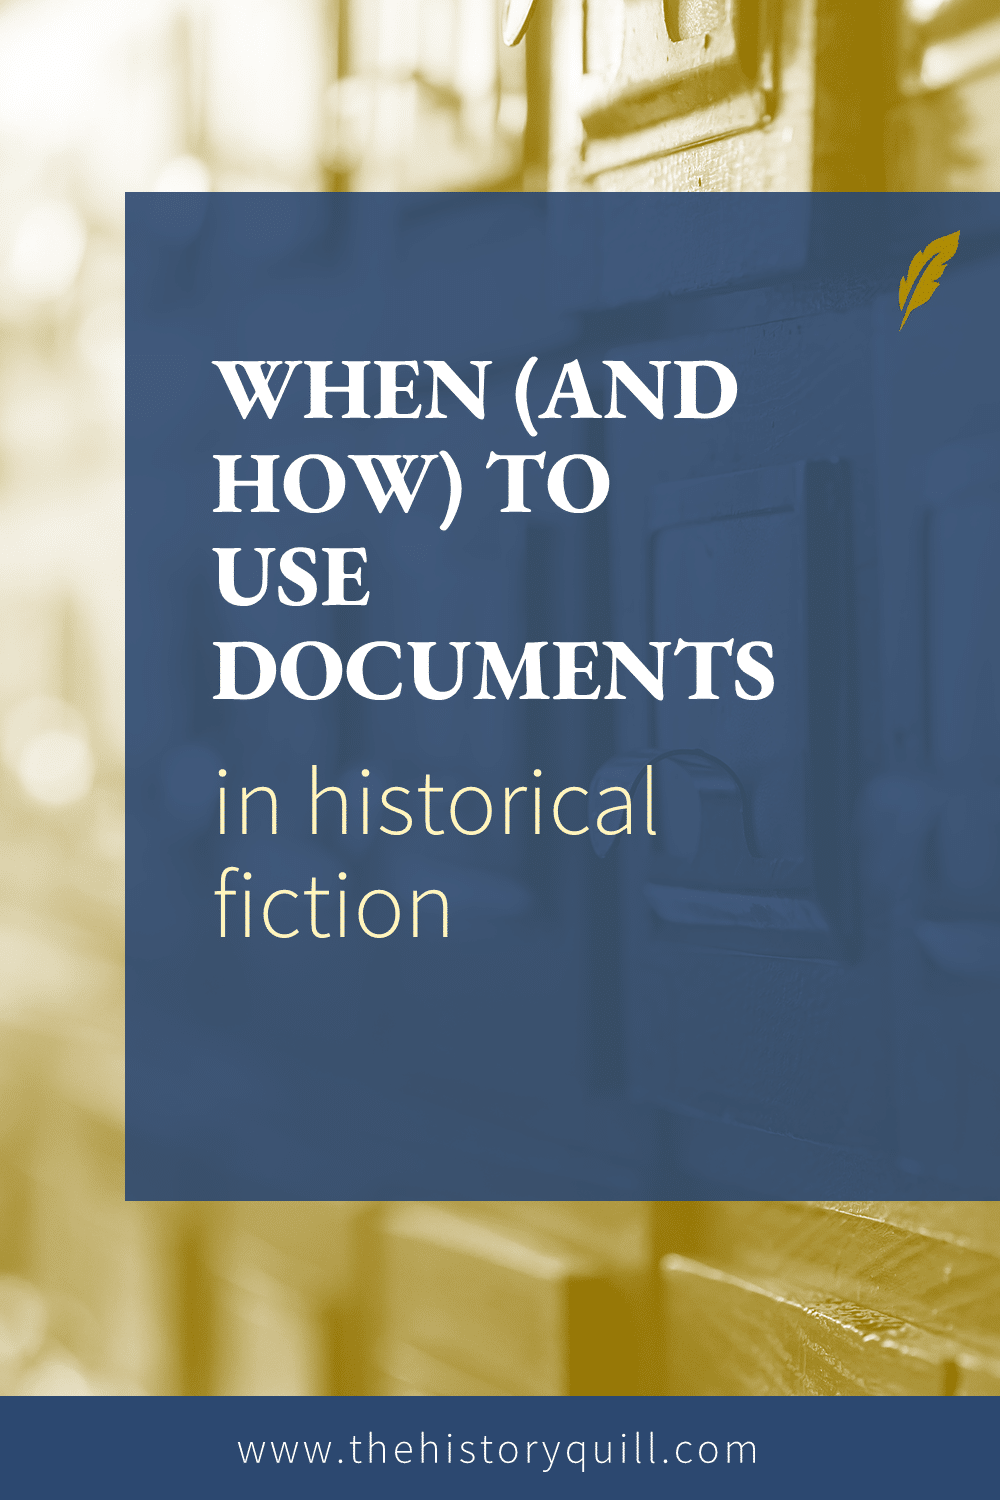 From The History Quill blog, when (and how) to use documents in historical fiction